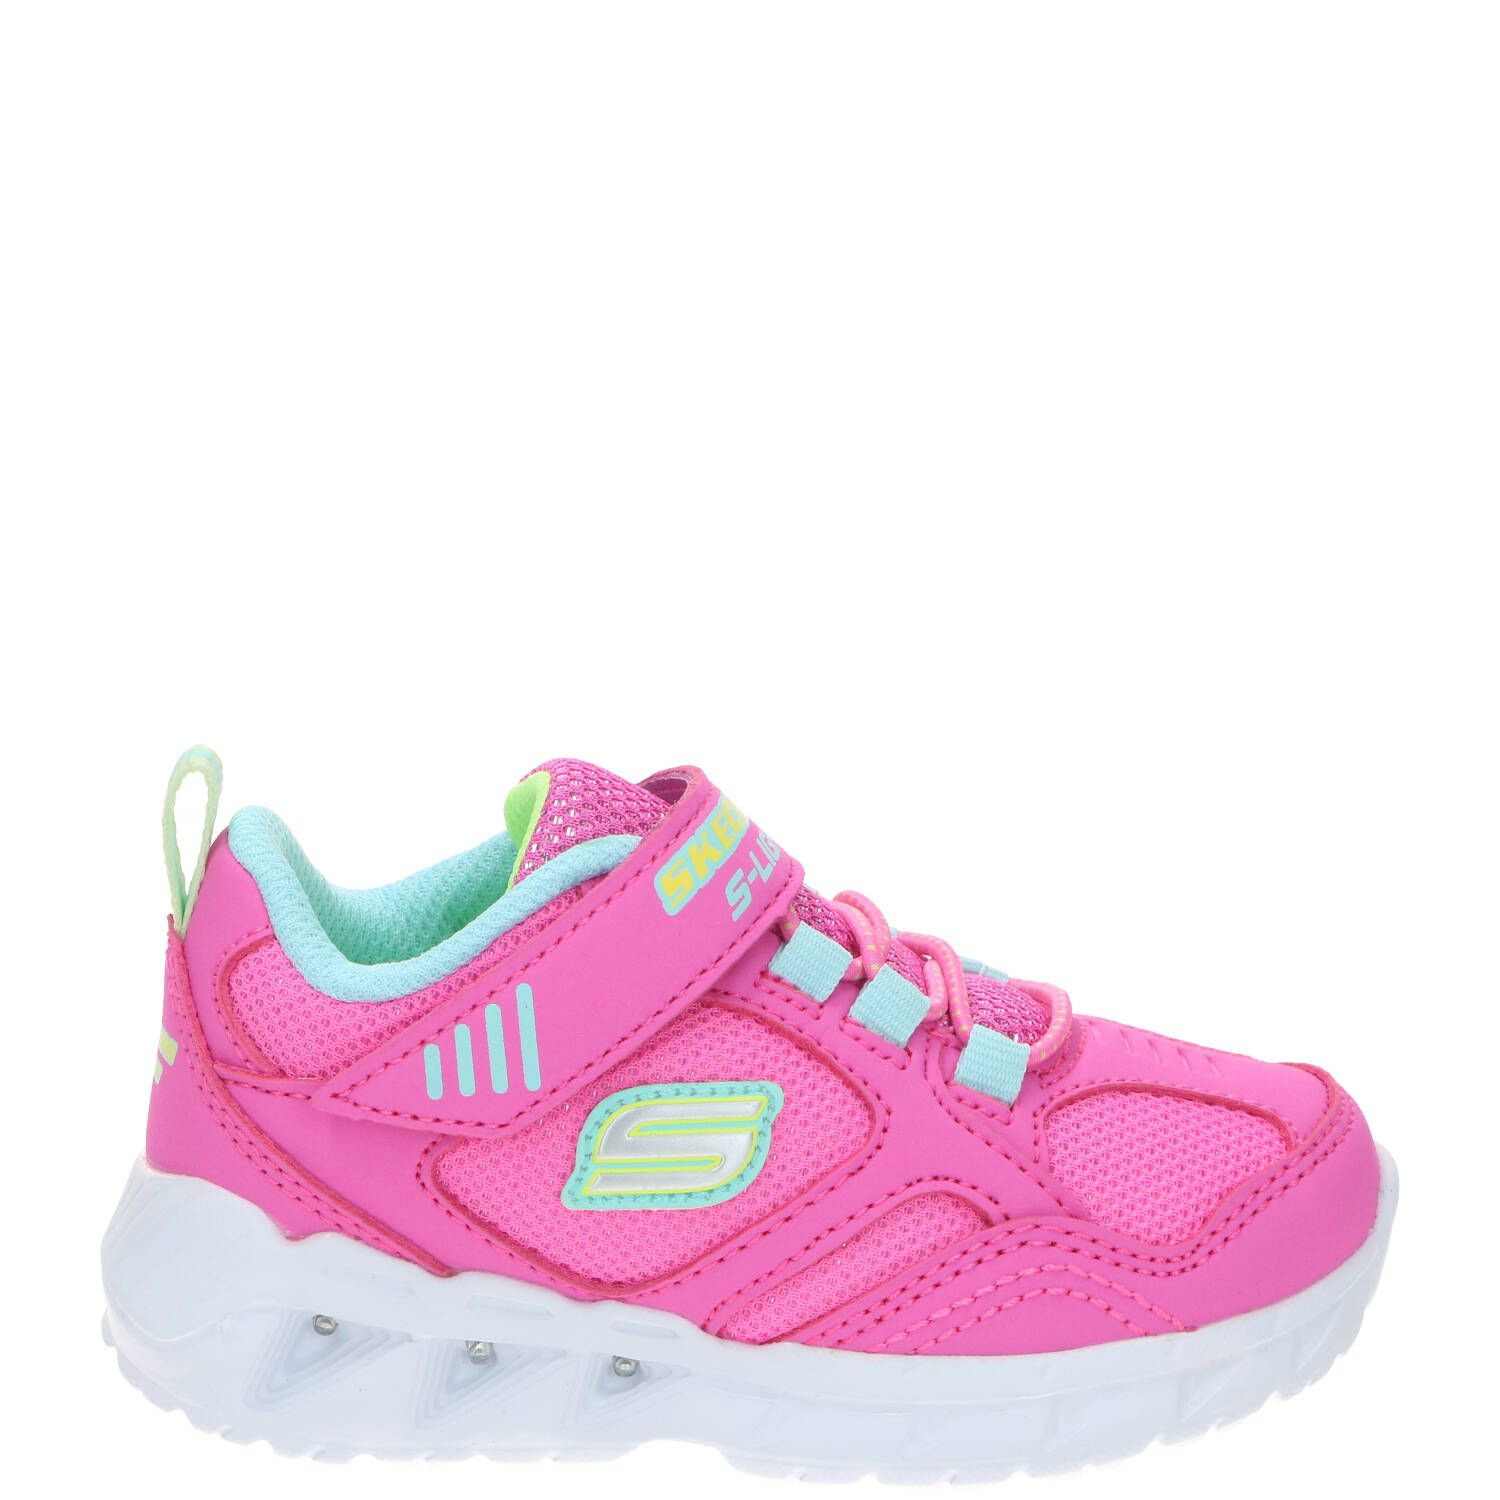 Skechers Magna-Lights Expert Level sneaker, Sneakers, Meisje, Maat 22,